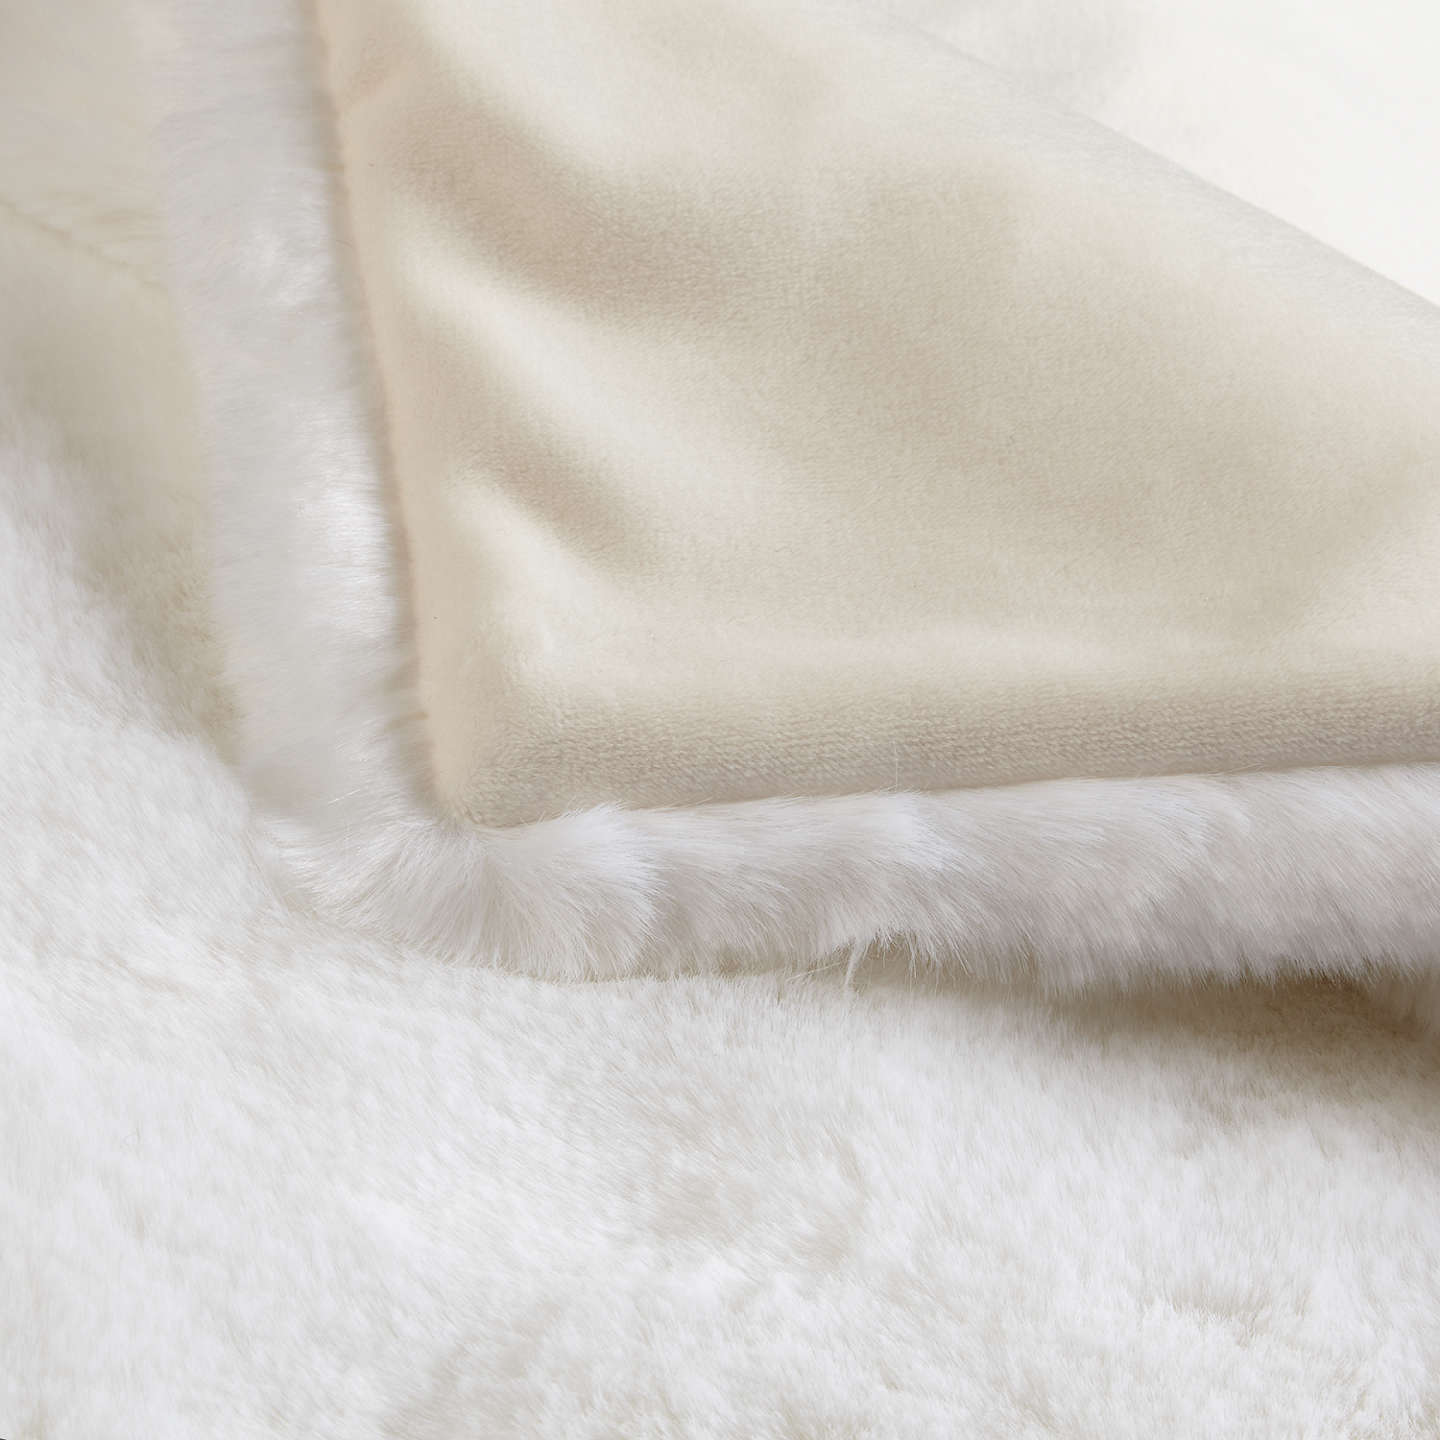 BuyJohn Lewis Faux Fur Throw, White Online at johnlewis.com